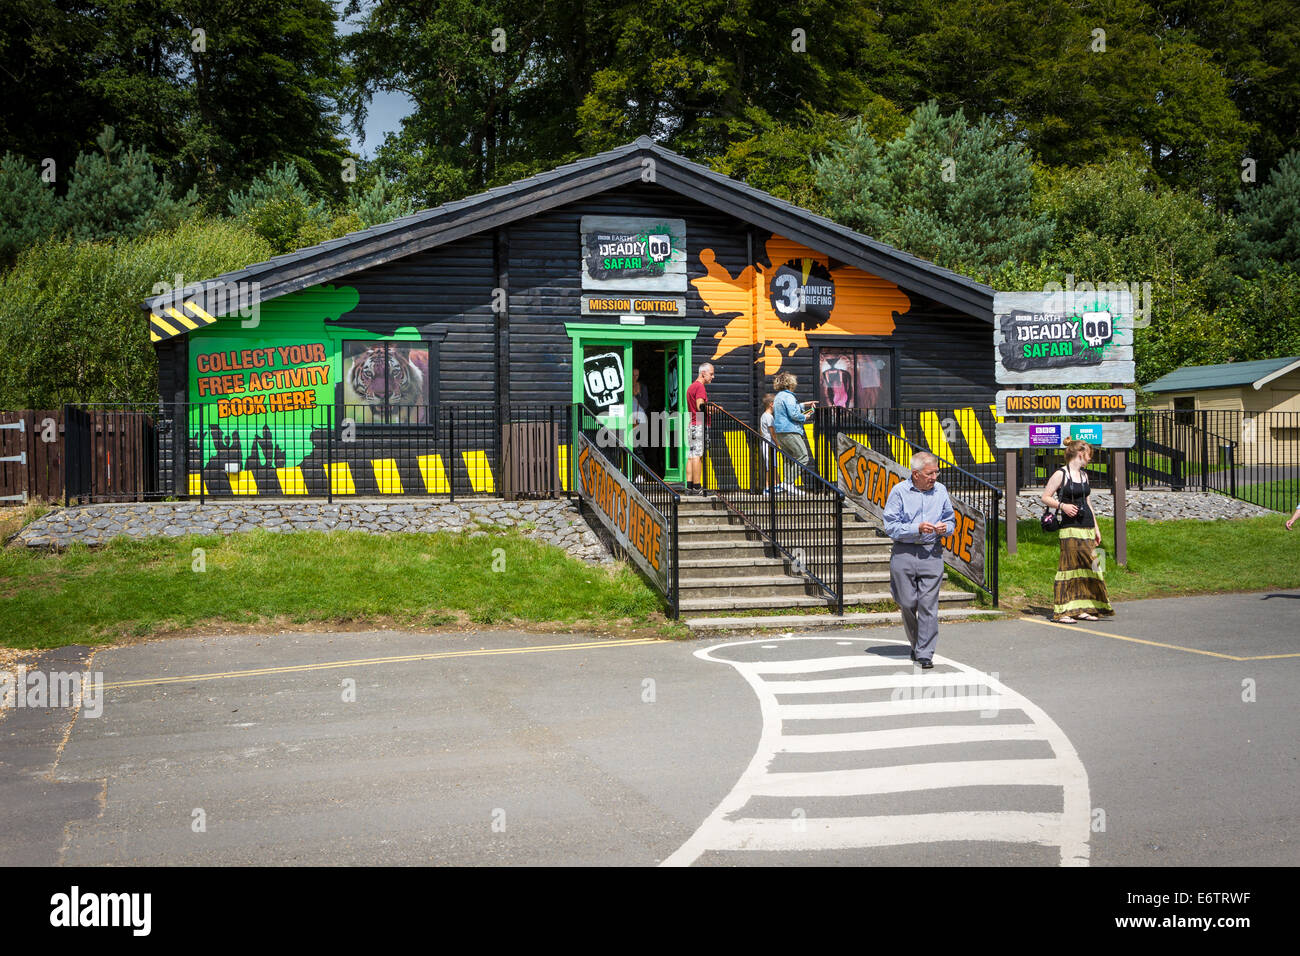 Deadly Safari Mission Control Building in the African Village at Longleat Safari Park - Stock Image